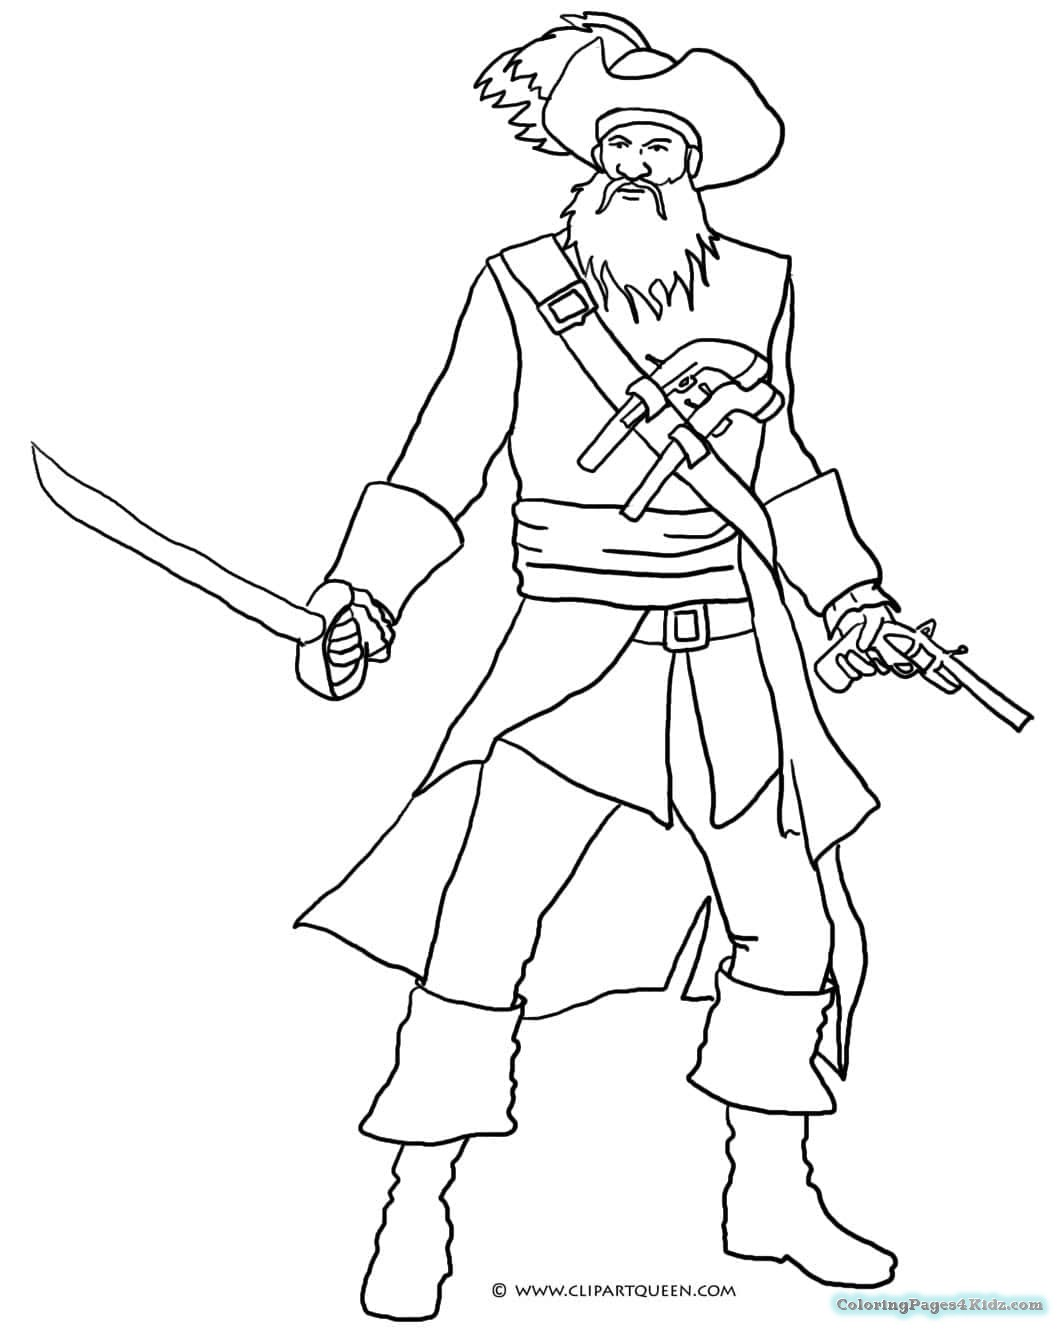 pirate coloring coloring page pirate gunsmith pirate coloring